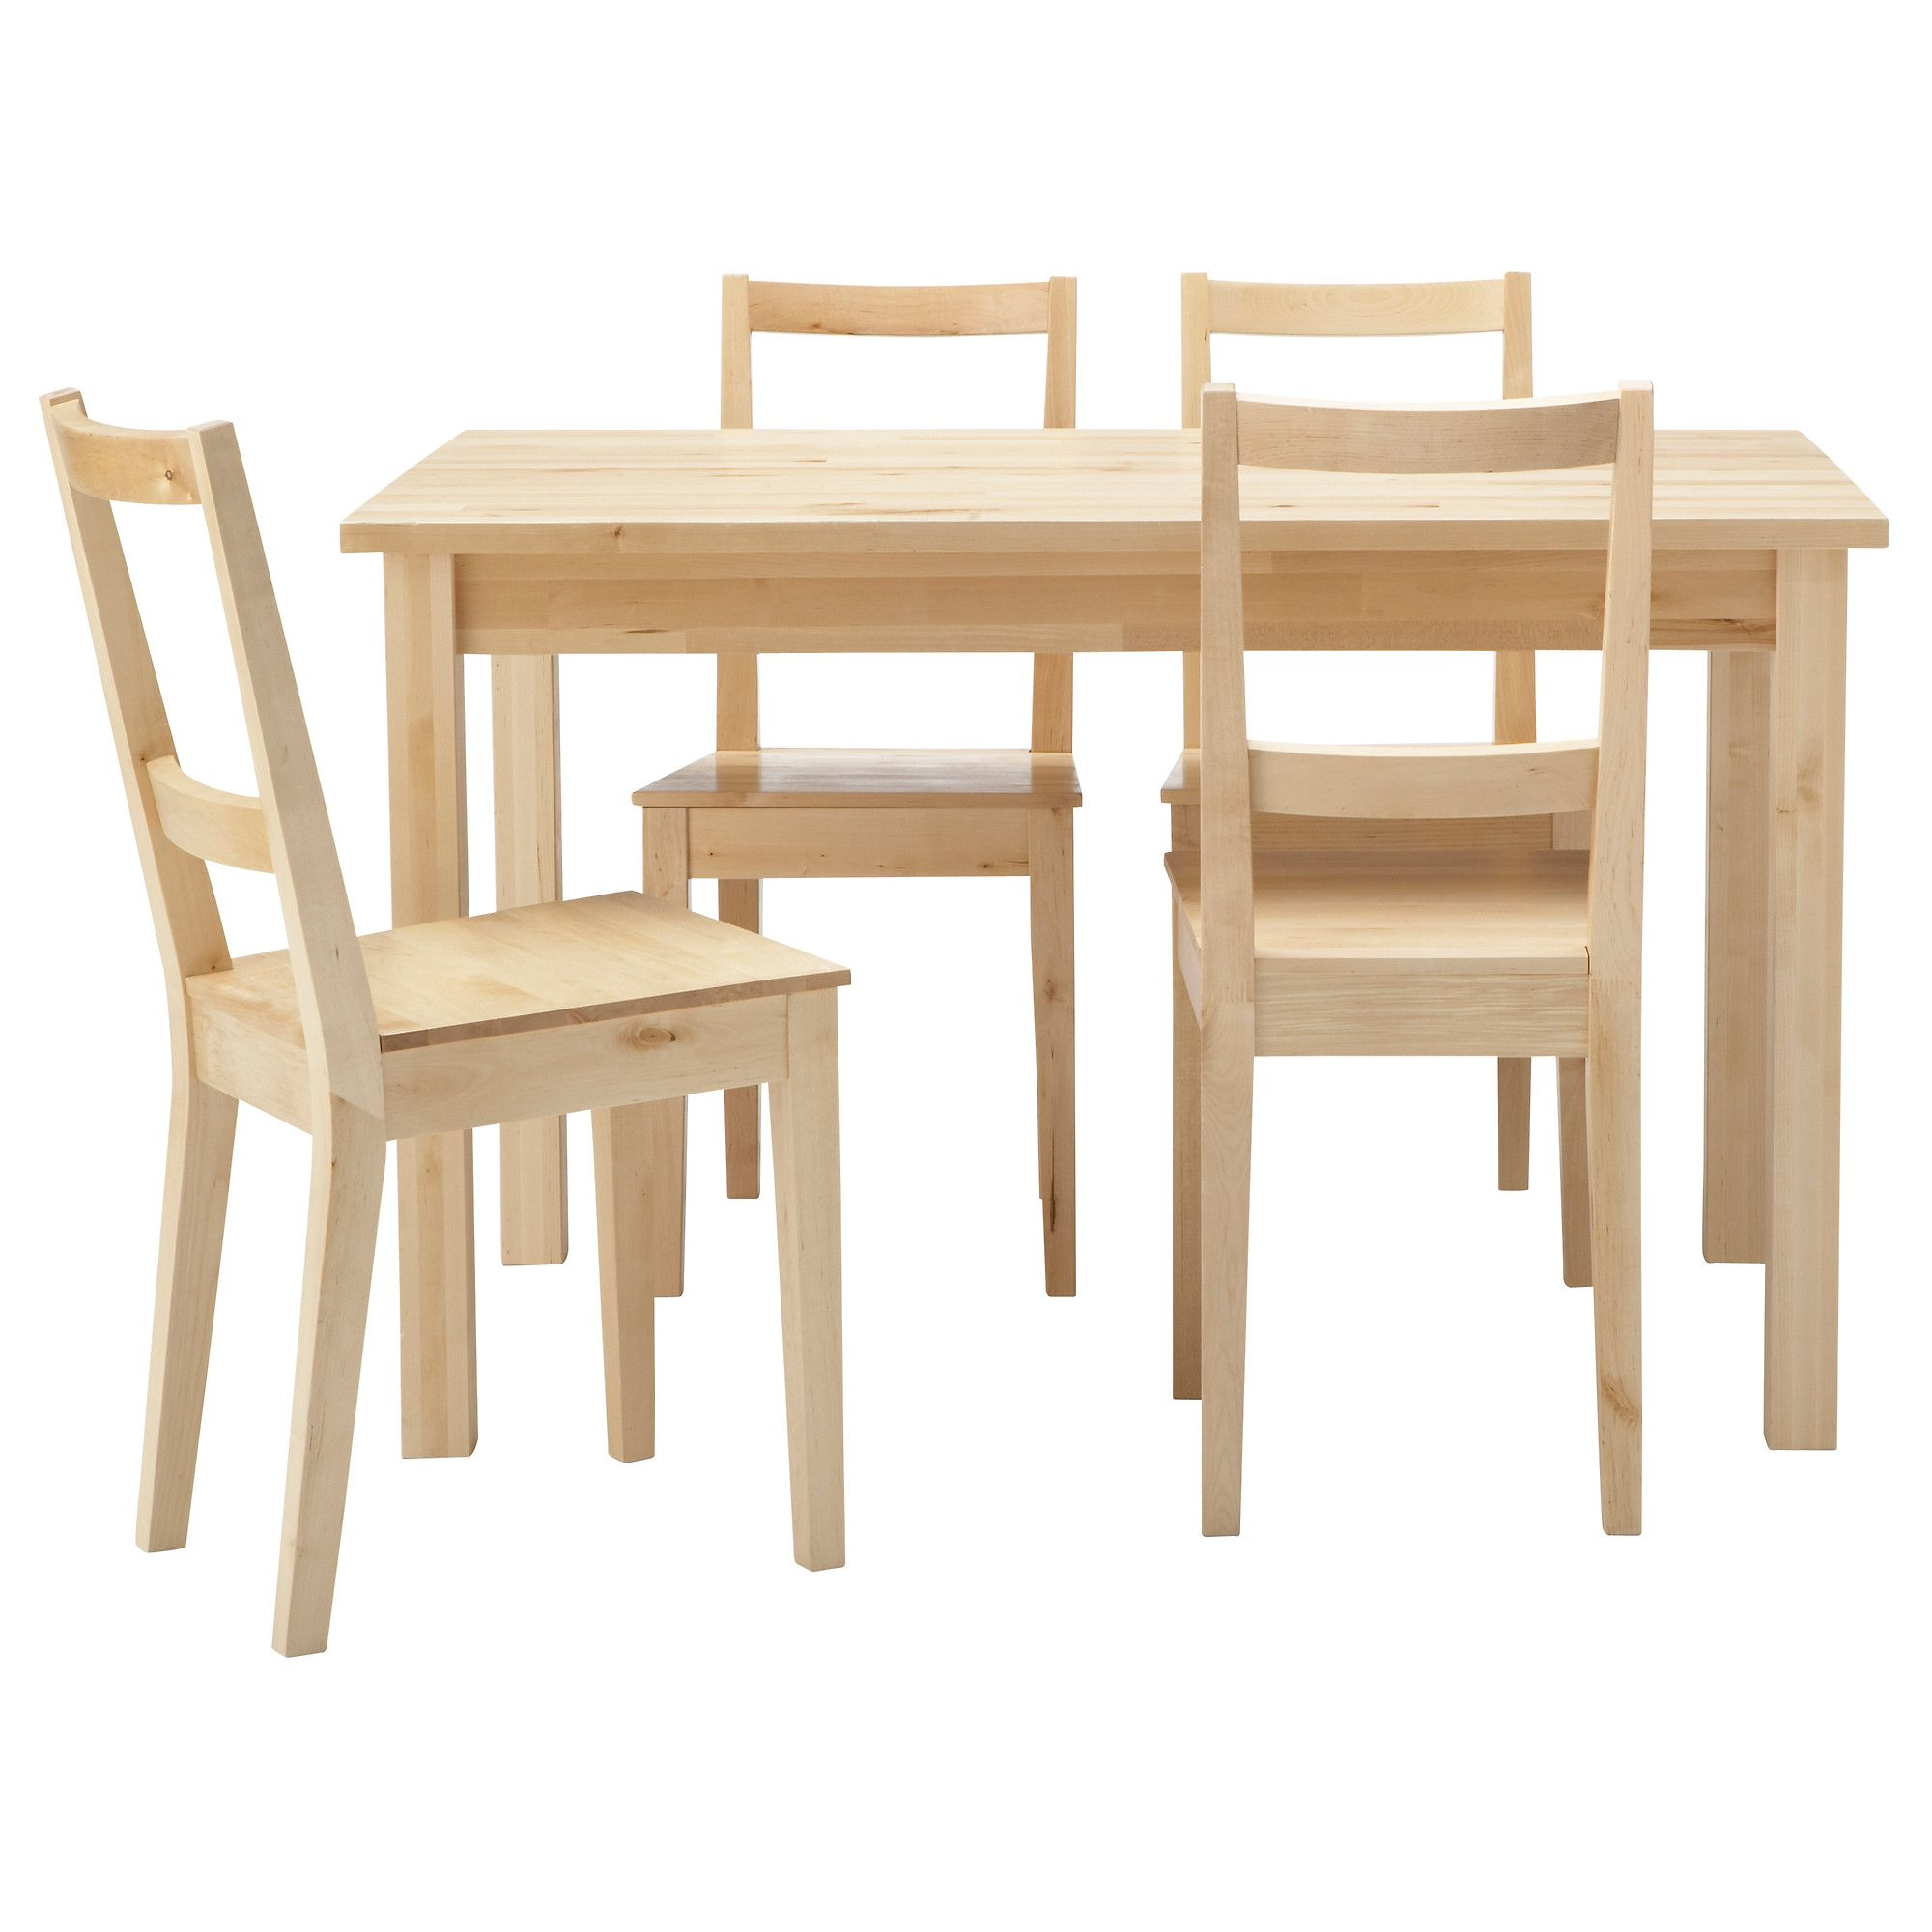 Dining room furniture appealing ikea dining sets with dining table and chairs furniture Wooden dining table and chairs